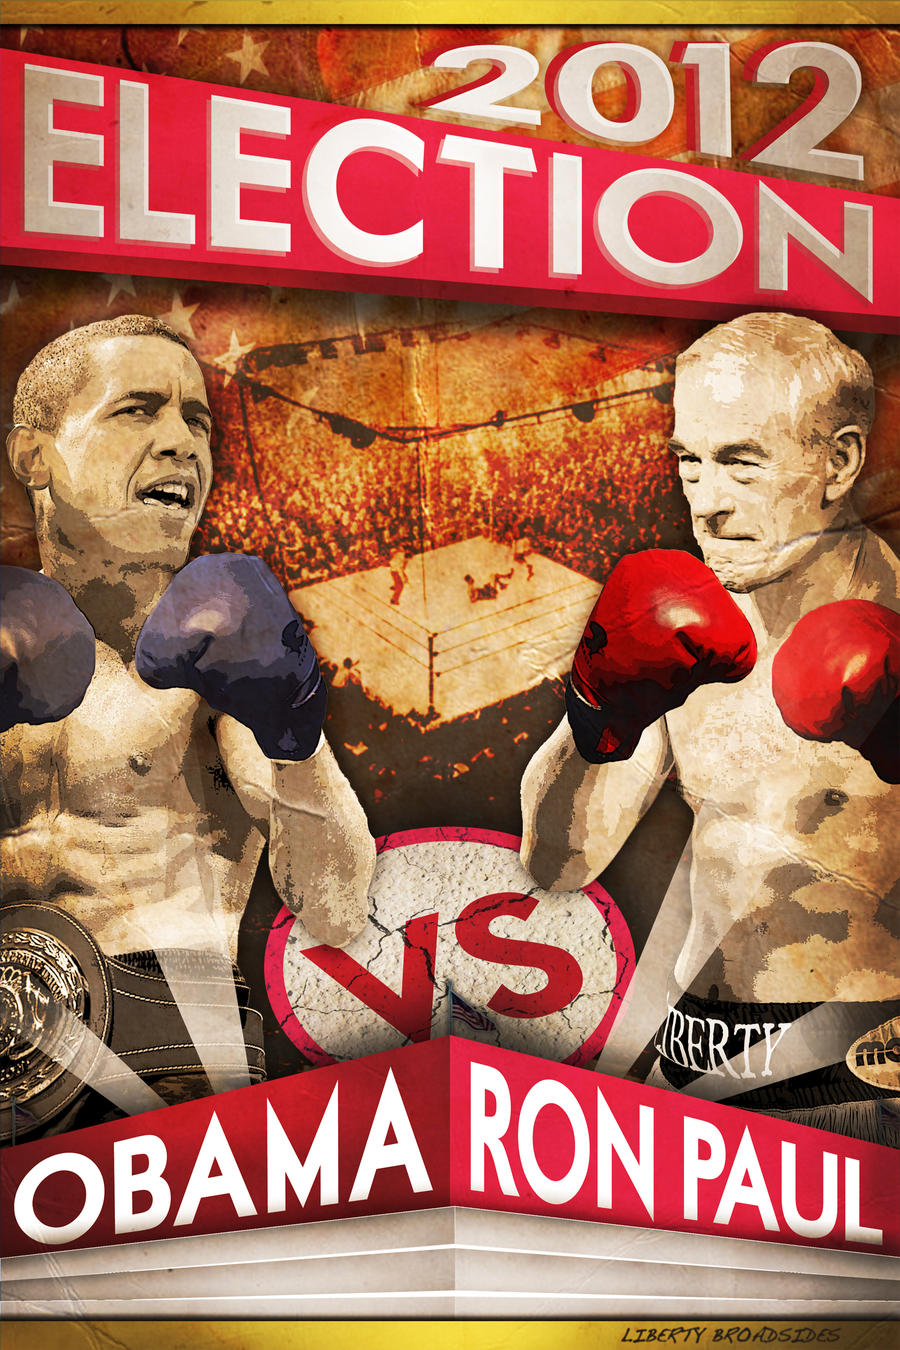 Ron Paul VS Obama in 2012 by LibertyBroadsides